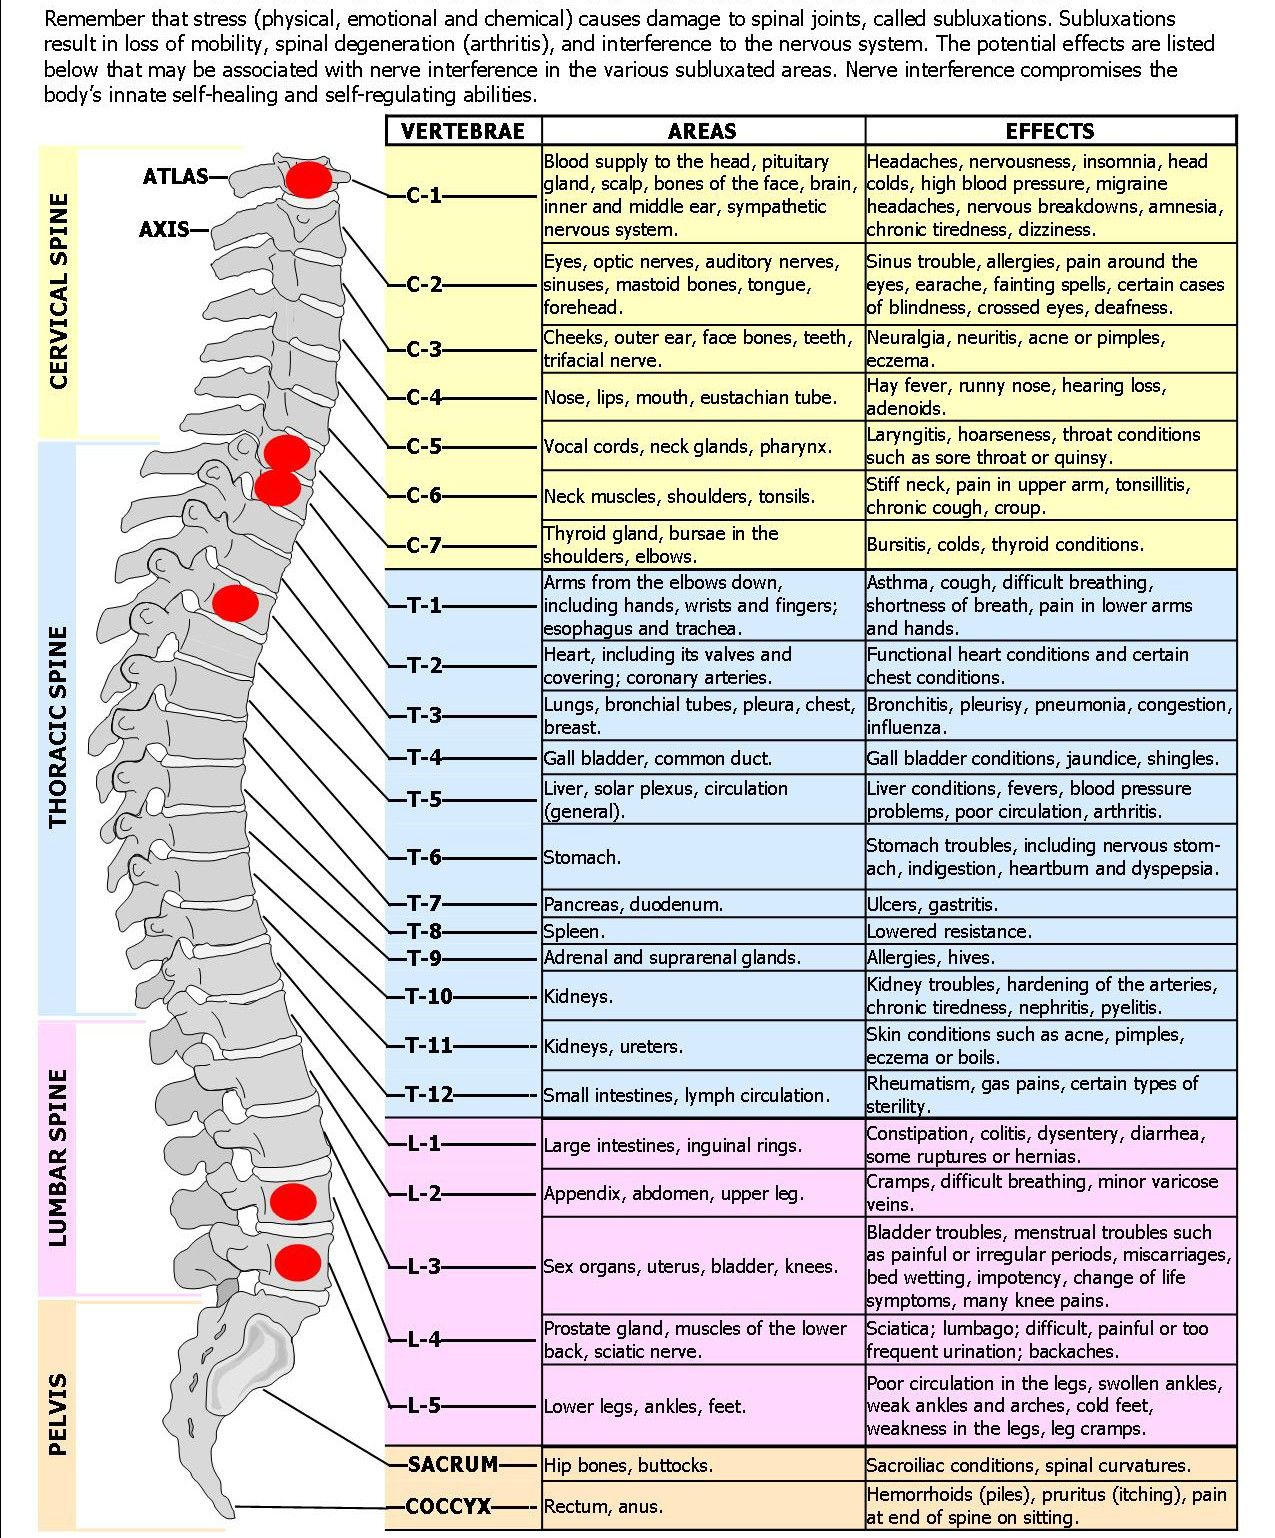 spinal cord structure with diagram detroit ddec 2 ecm wiring spine 43diagram nerves and effects chart good to